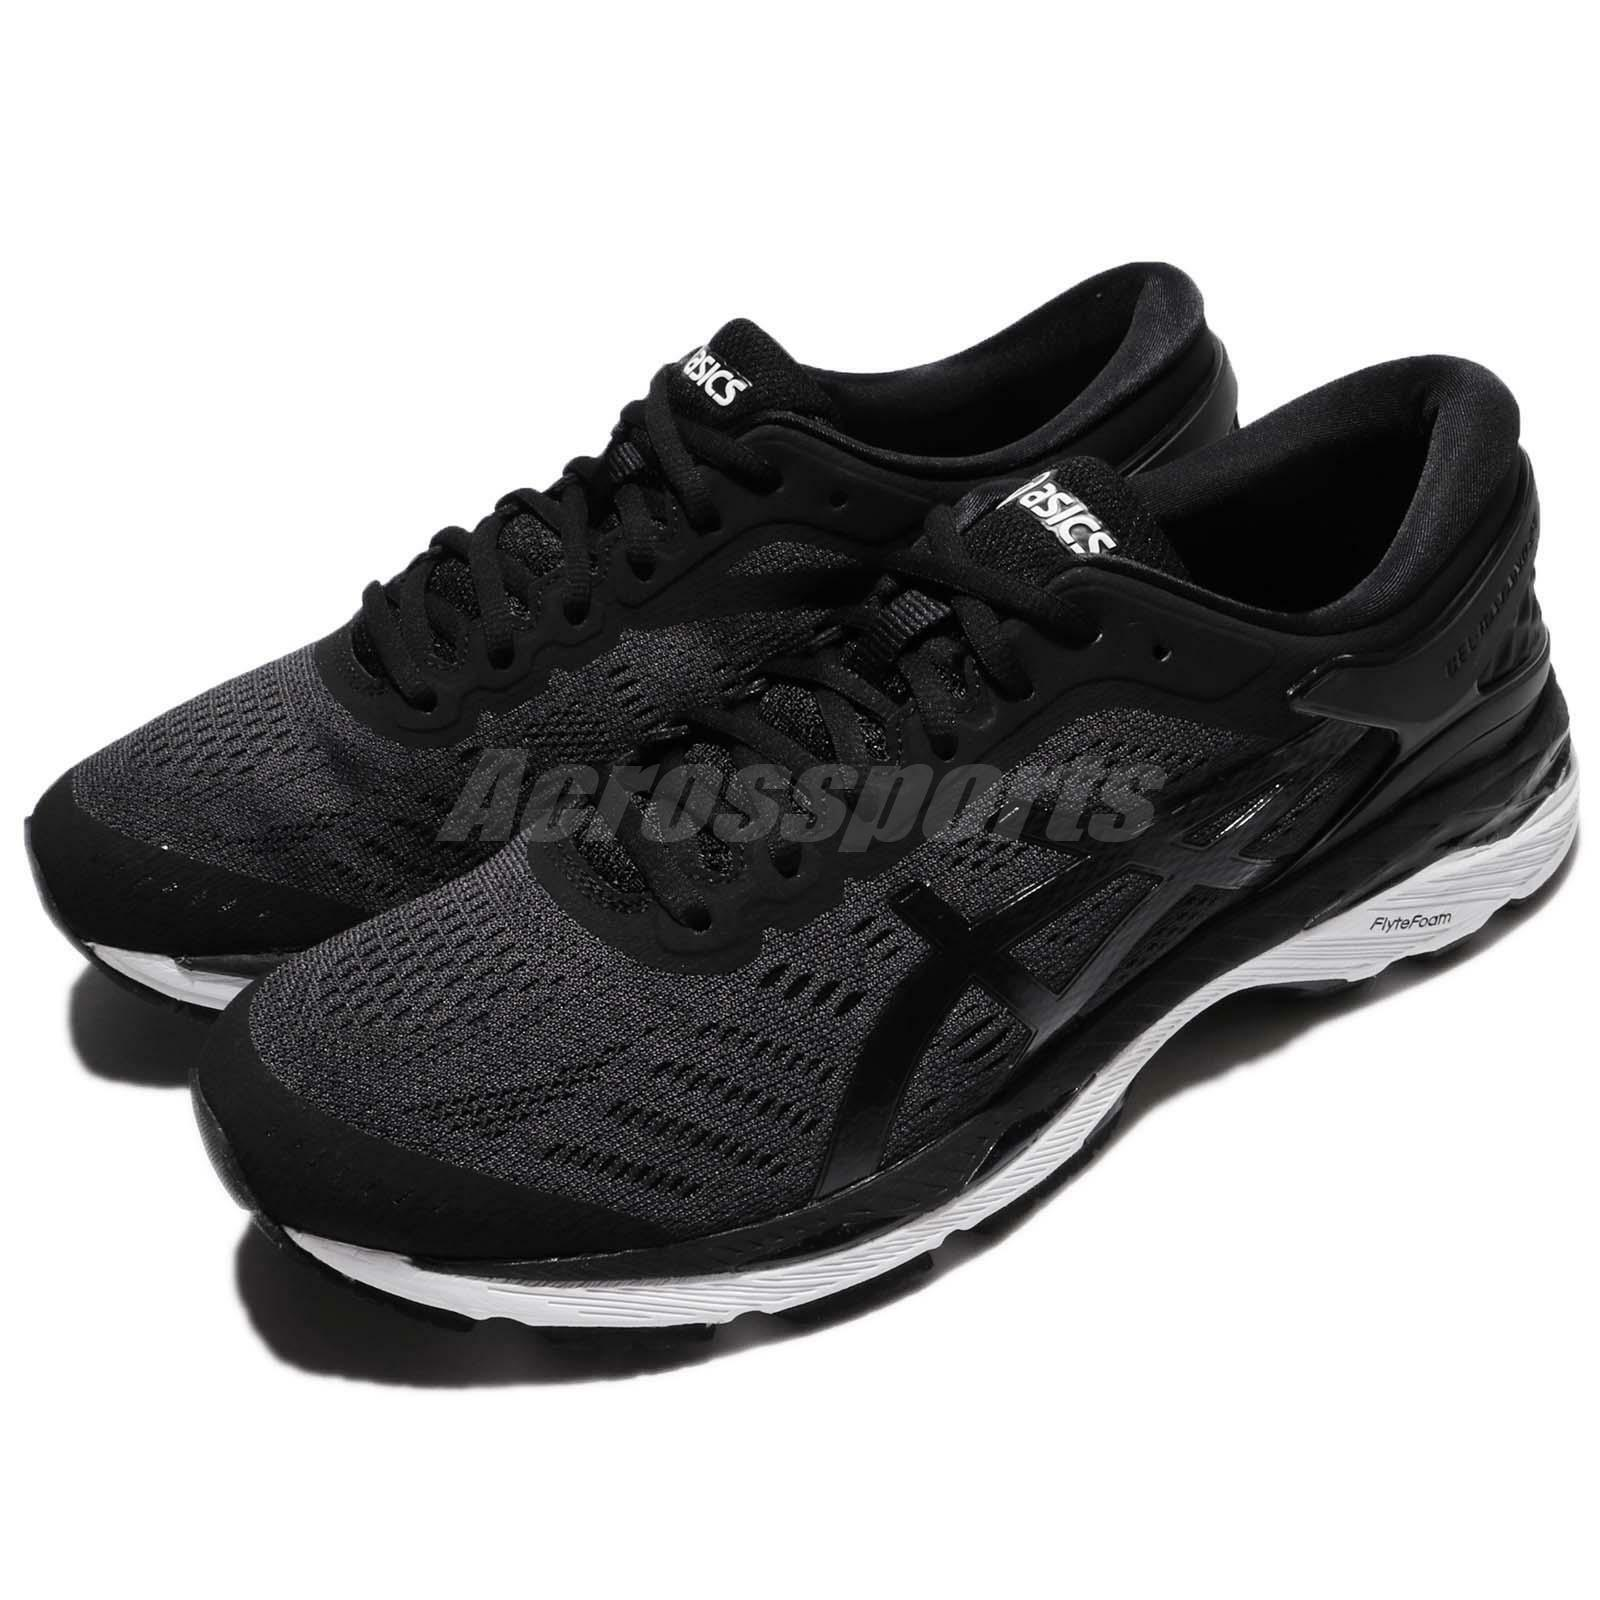 Asics Gel-Kayano 24 Black White Men Running Shoes Sneakers Trainers T749N-9016